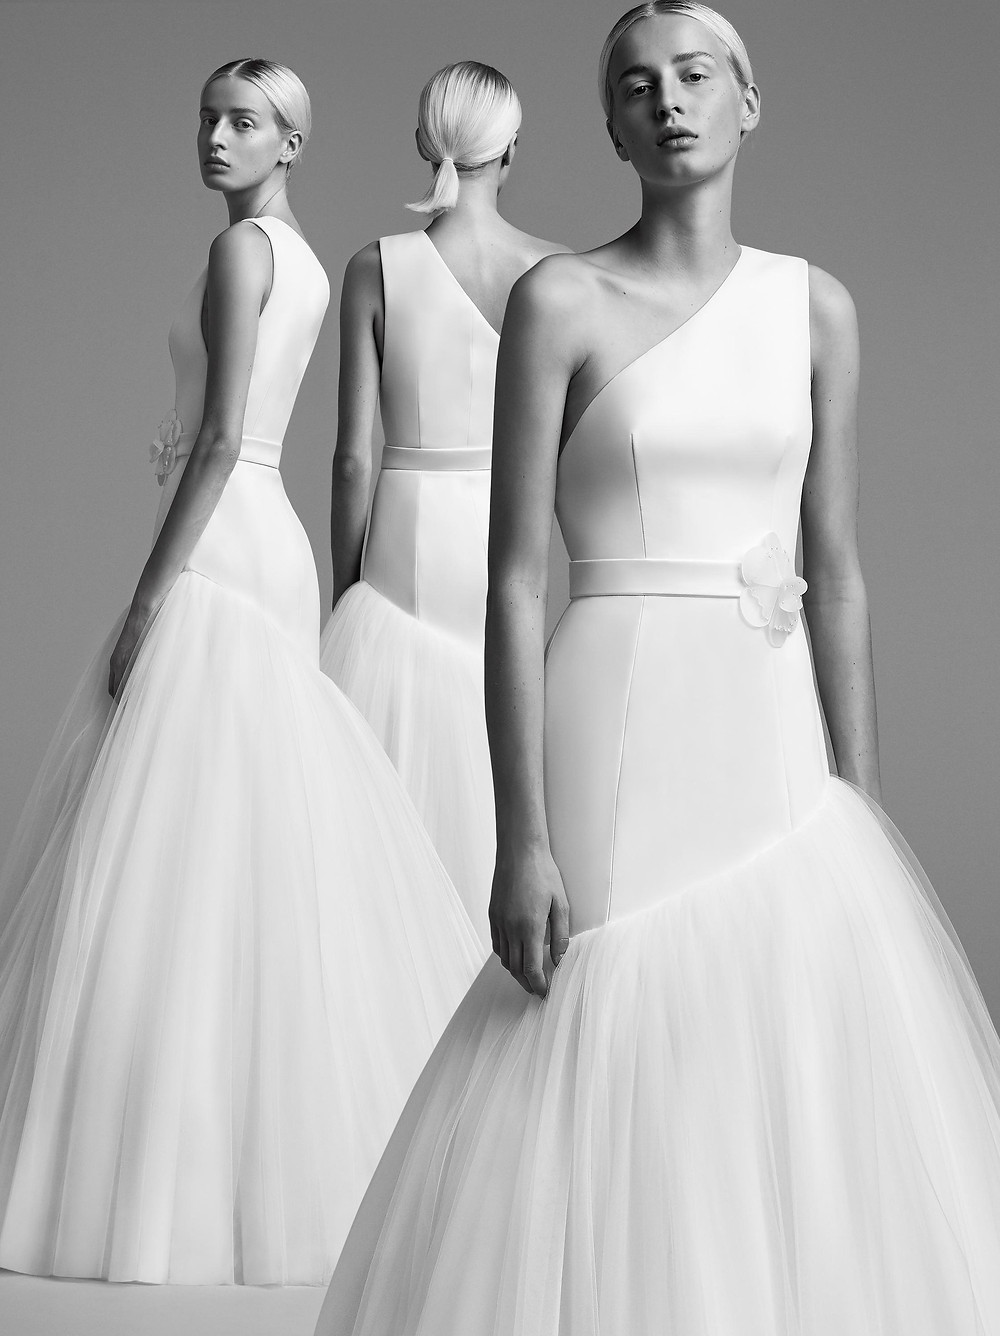 A one shoulder mermaid wedding dress with clean lines, a tulle skirt and a floral belt